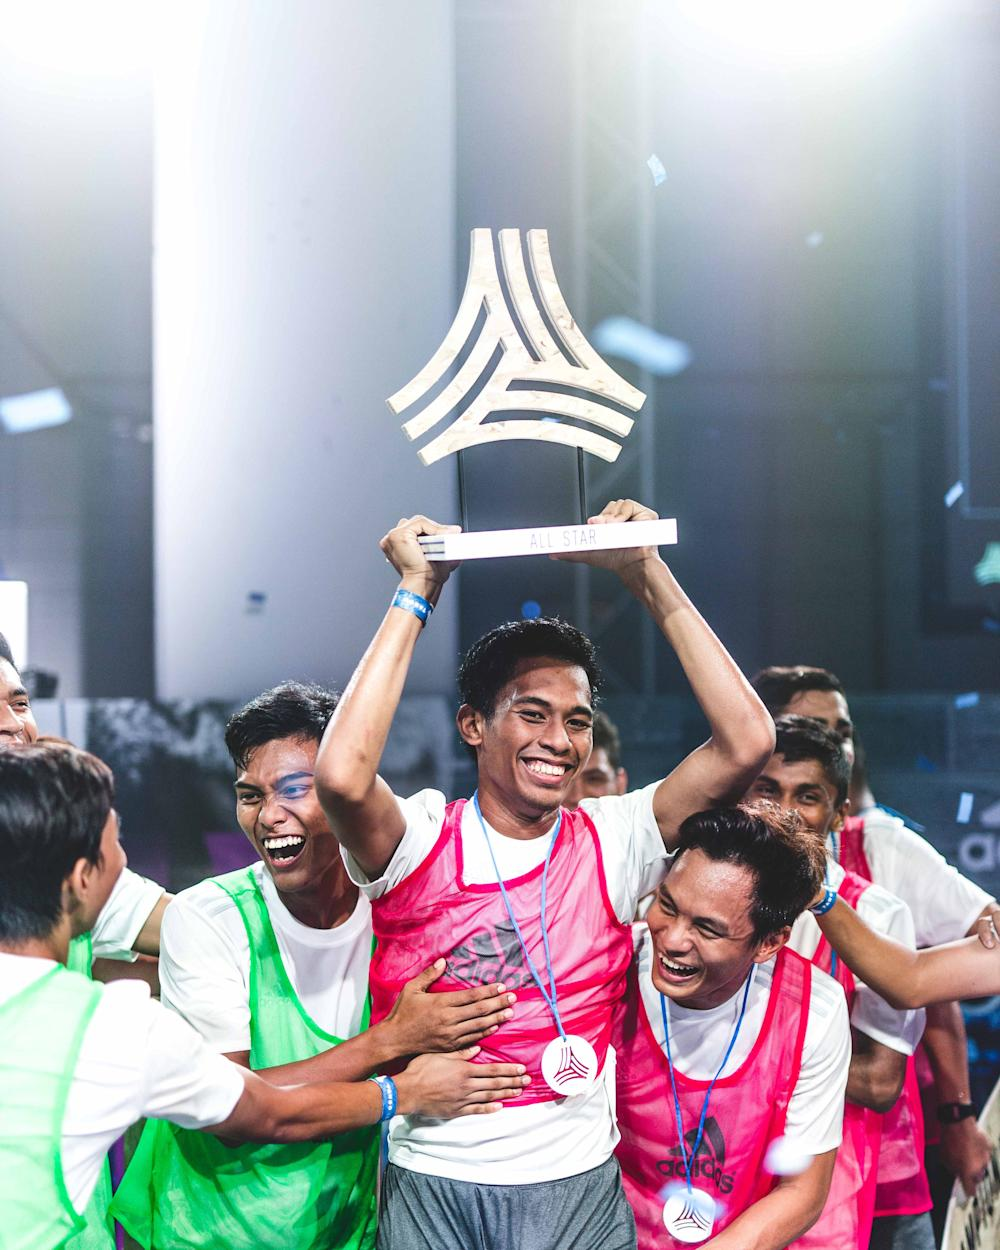 adidas Tango League Singapore MVP, Iqram Fiqri holding up his trophy among teammates